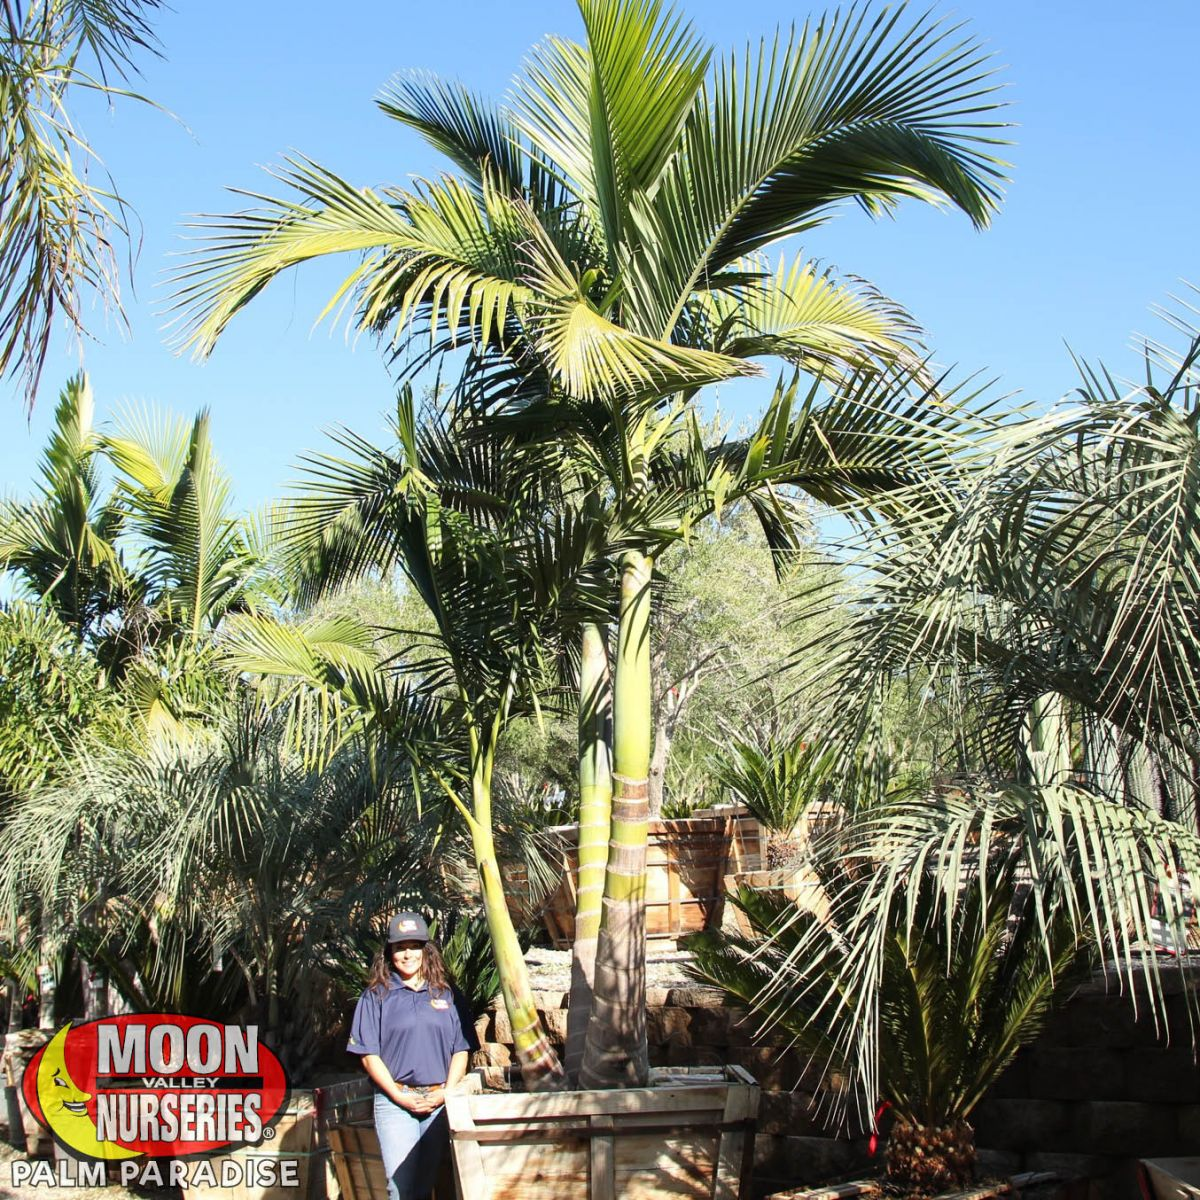 Walsh River King Palm Palm Tree Palm Paradise Nursery